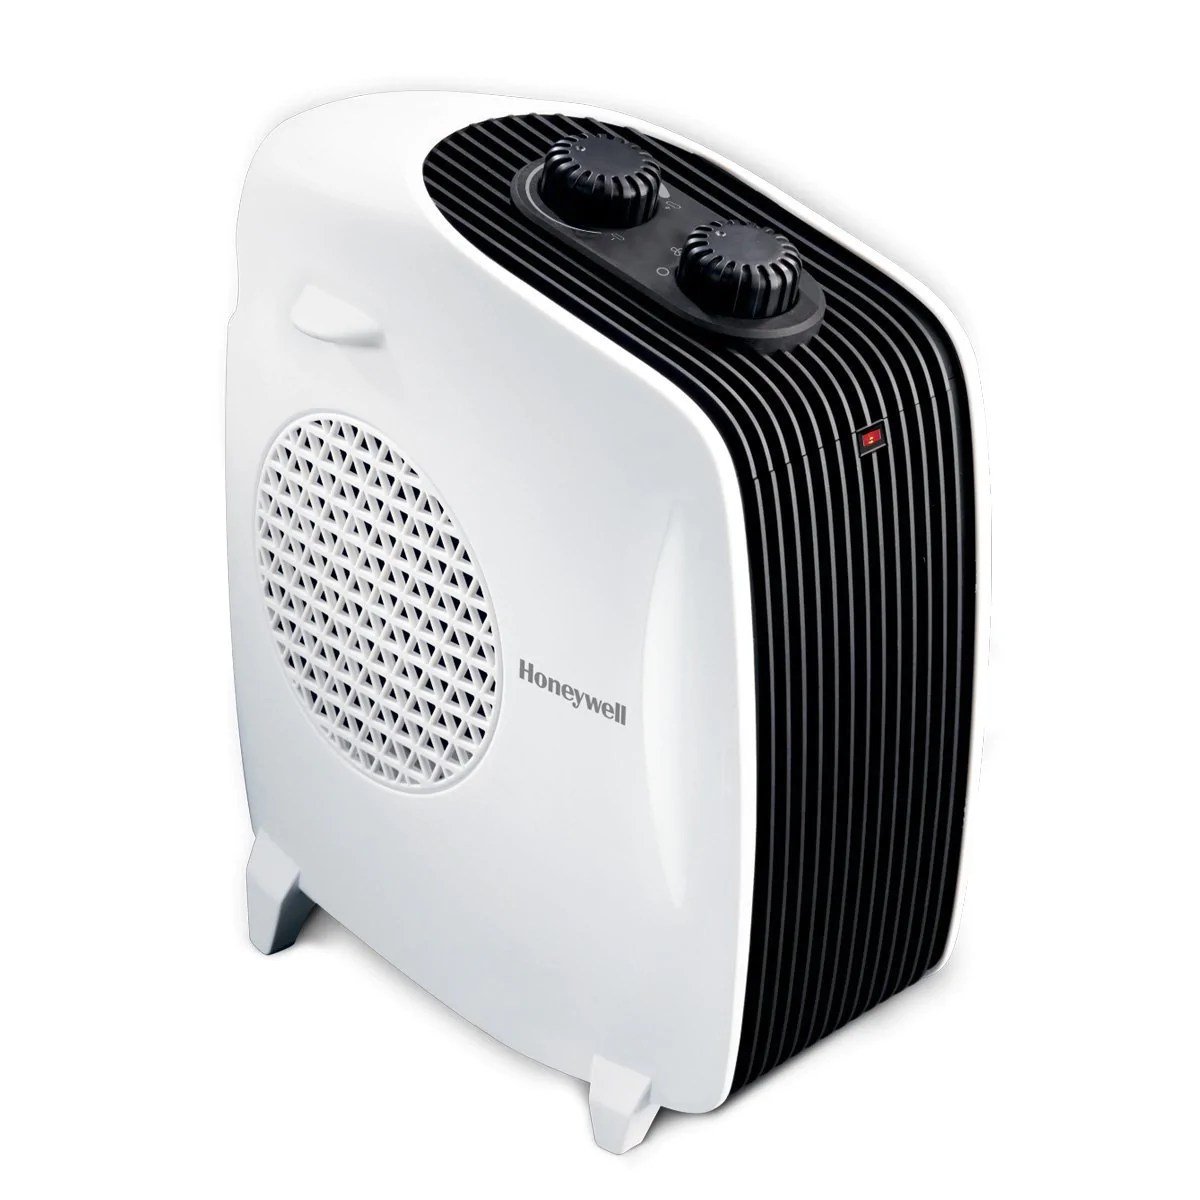 honeywell fan a diagram of fish hhf175w personal dual position space heater